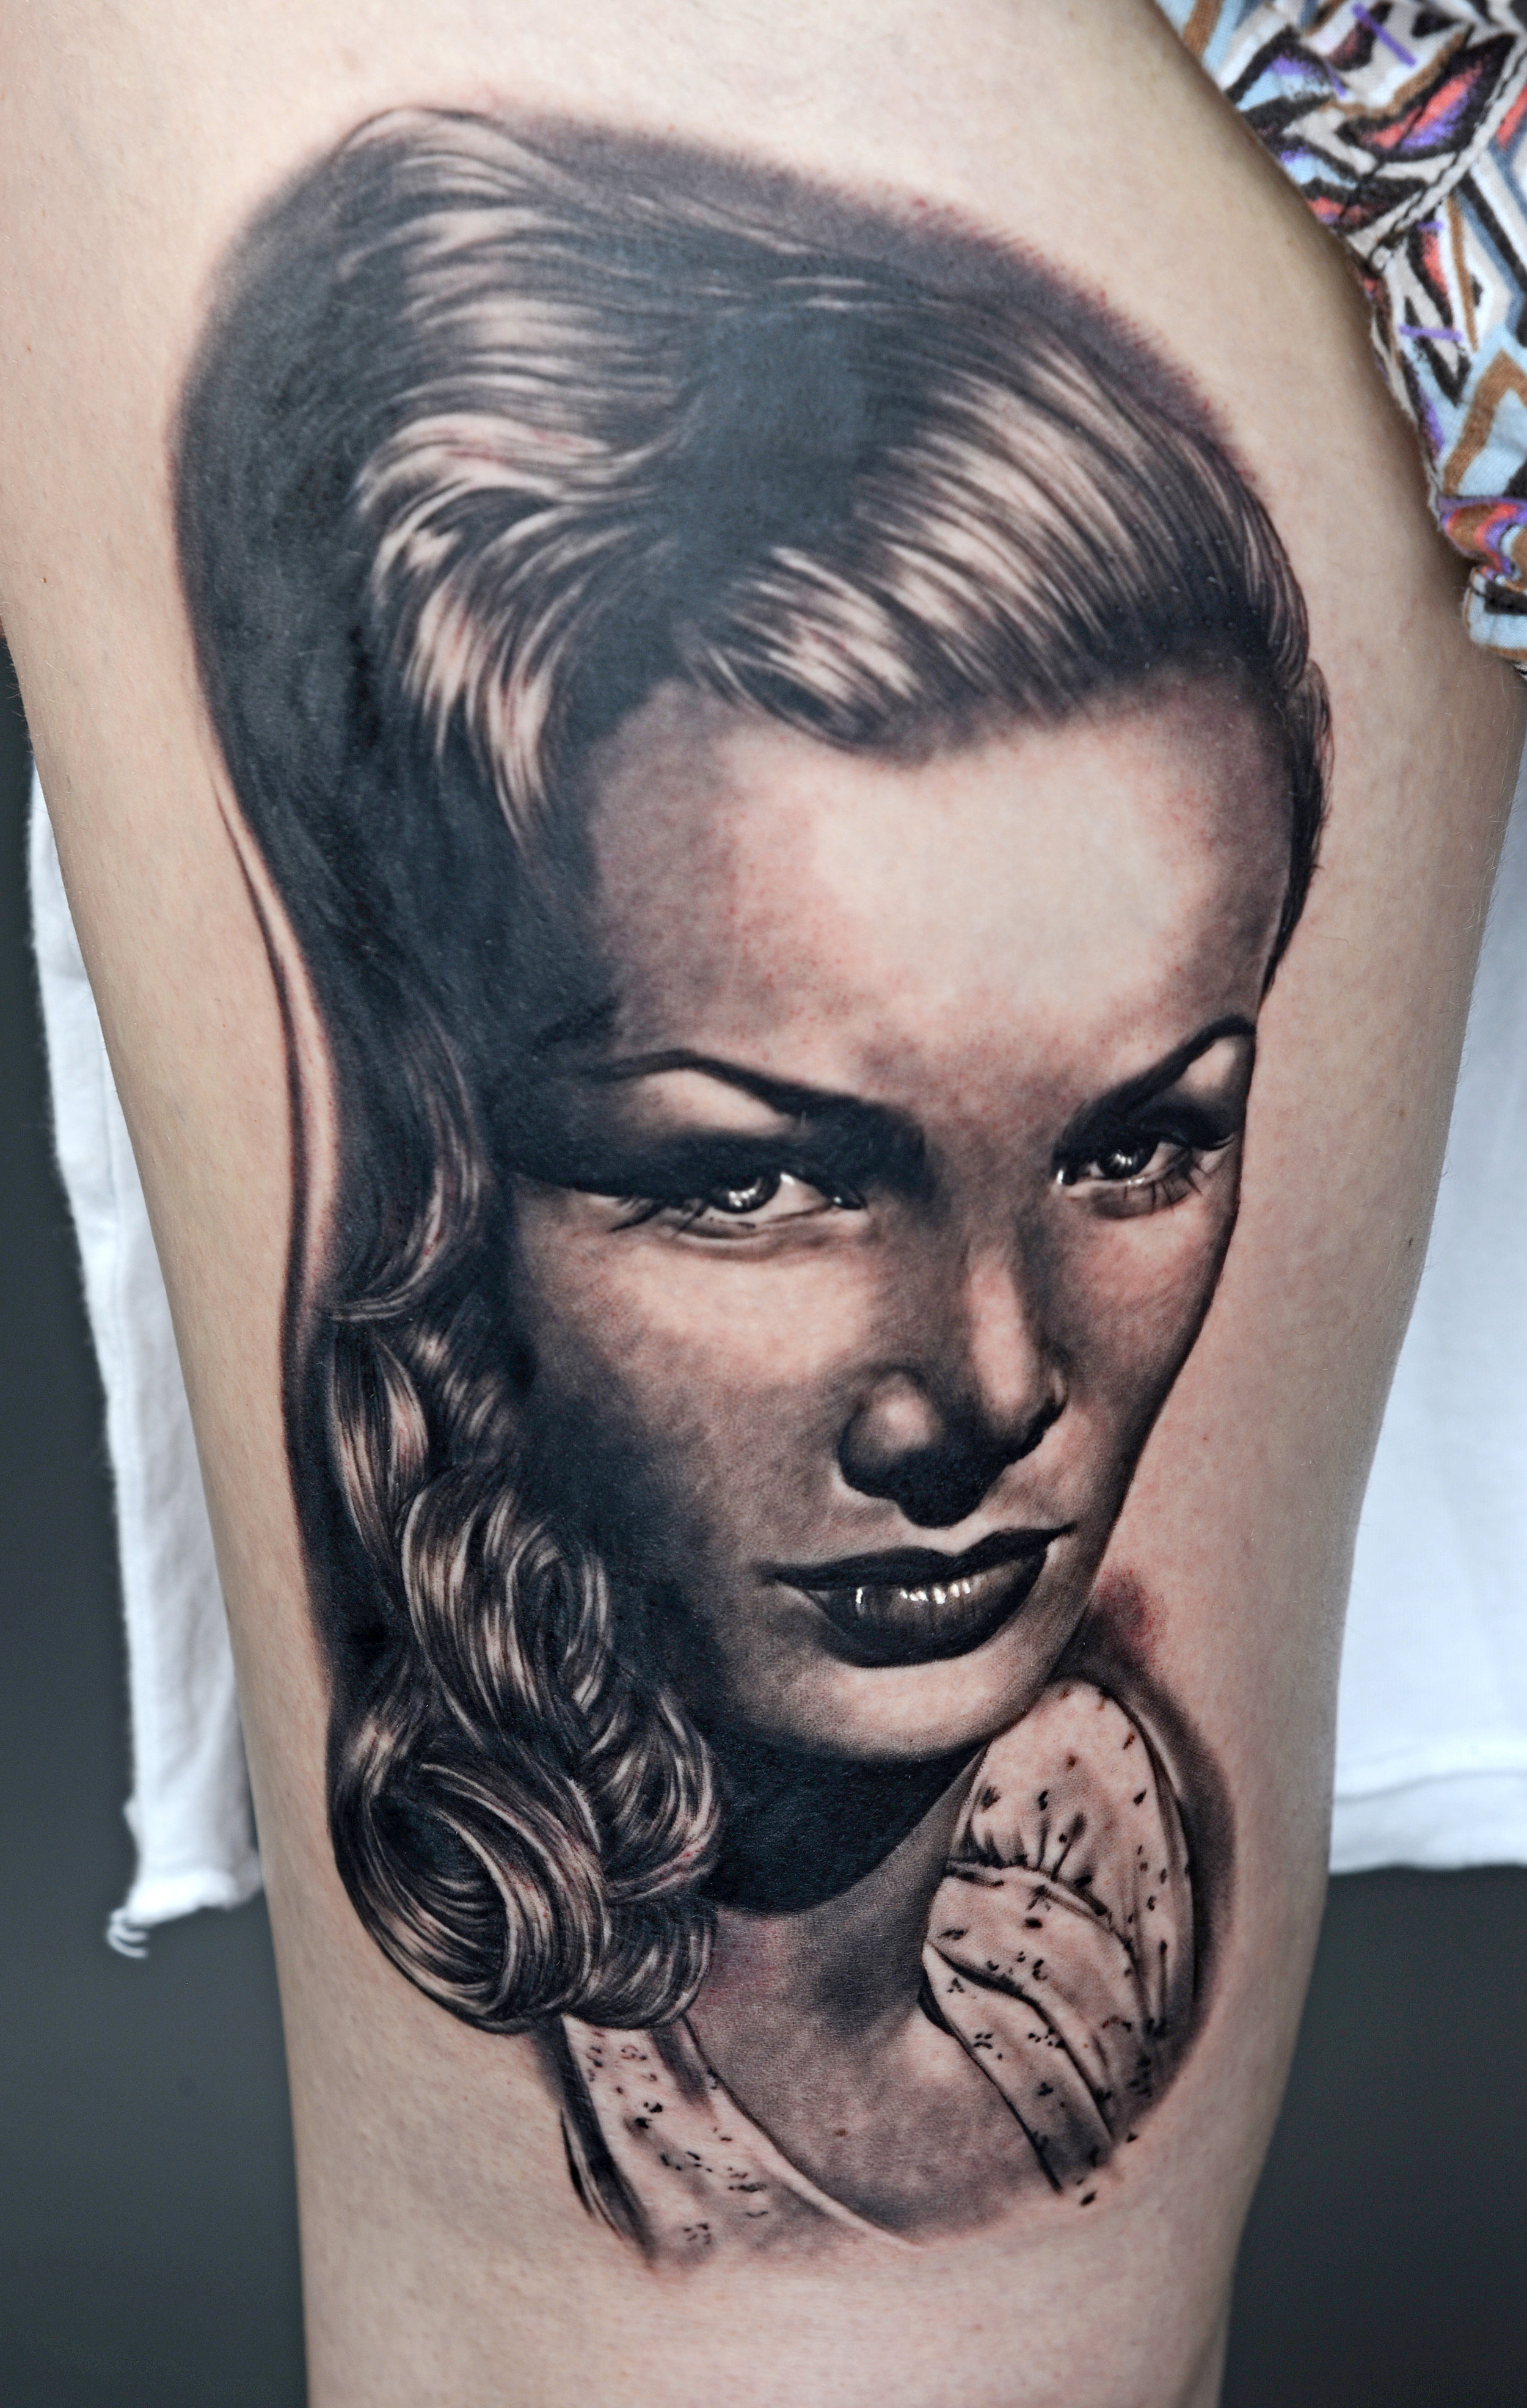 Yisis of The White Room Tattoo - Best Realism